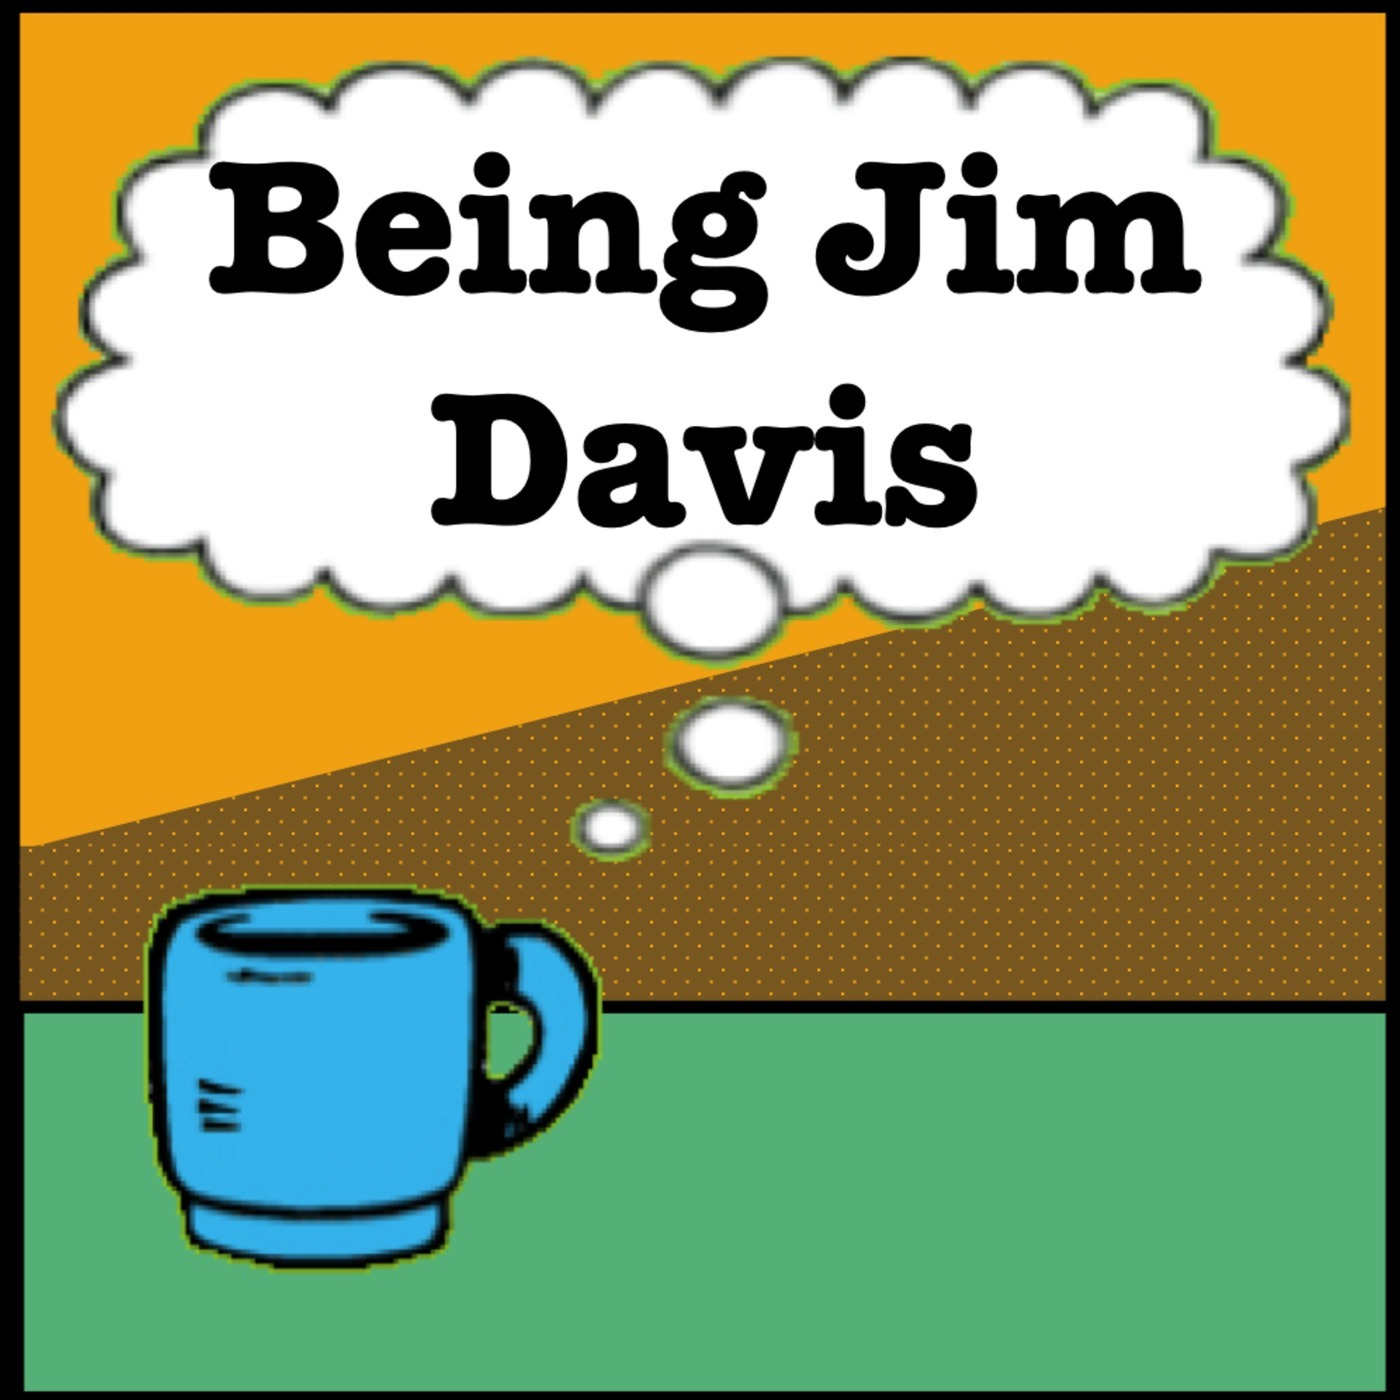 Being Jim Davis: Episode 1311 - Tuesday, January 19, 1982